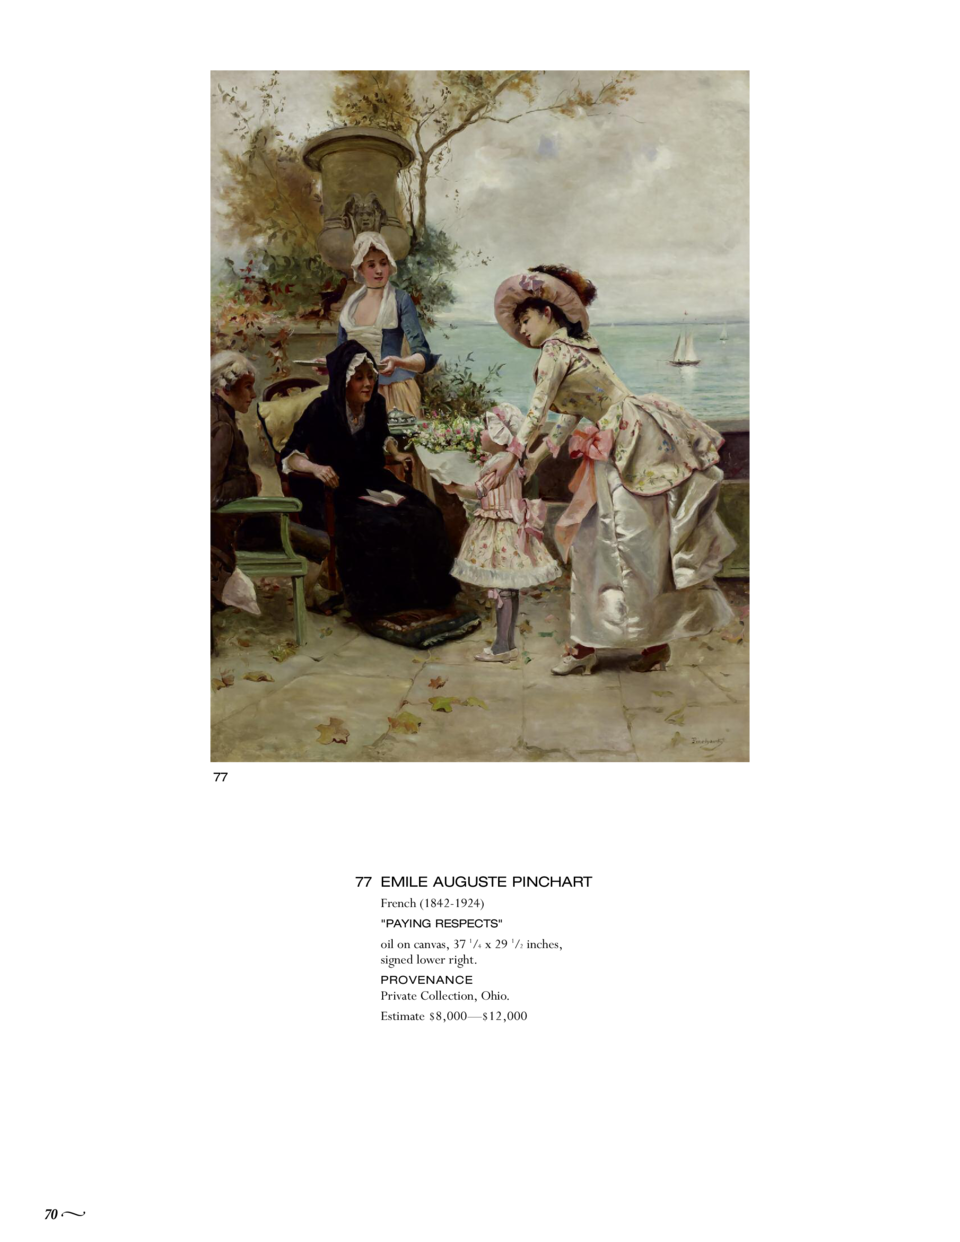 77  77 EMILE AUGUSTE PINCHART French  1842-1924   PAYING RESPECTS   oil on canvas, 37 1 4 x 29 1 2 inches, signed lower ri...